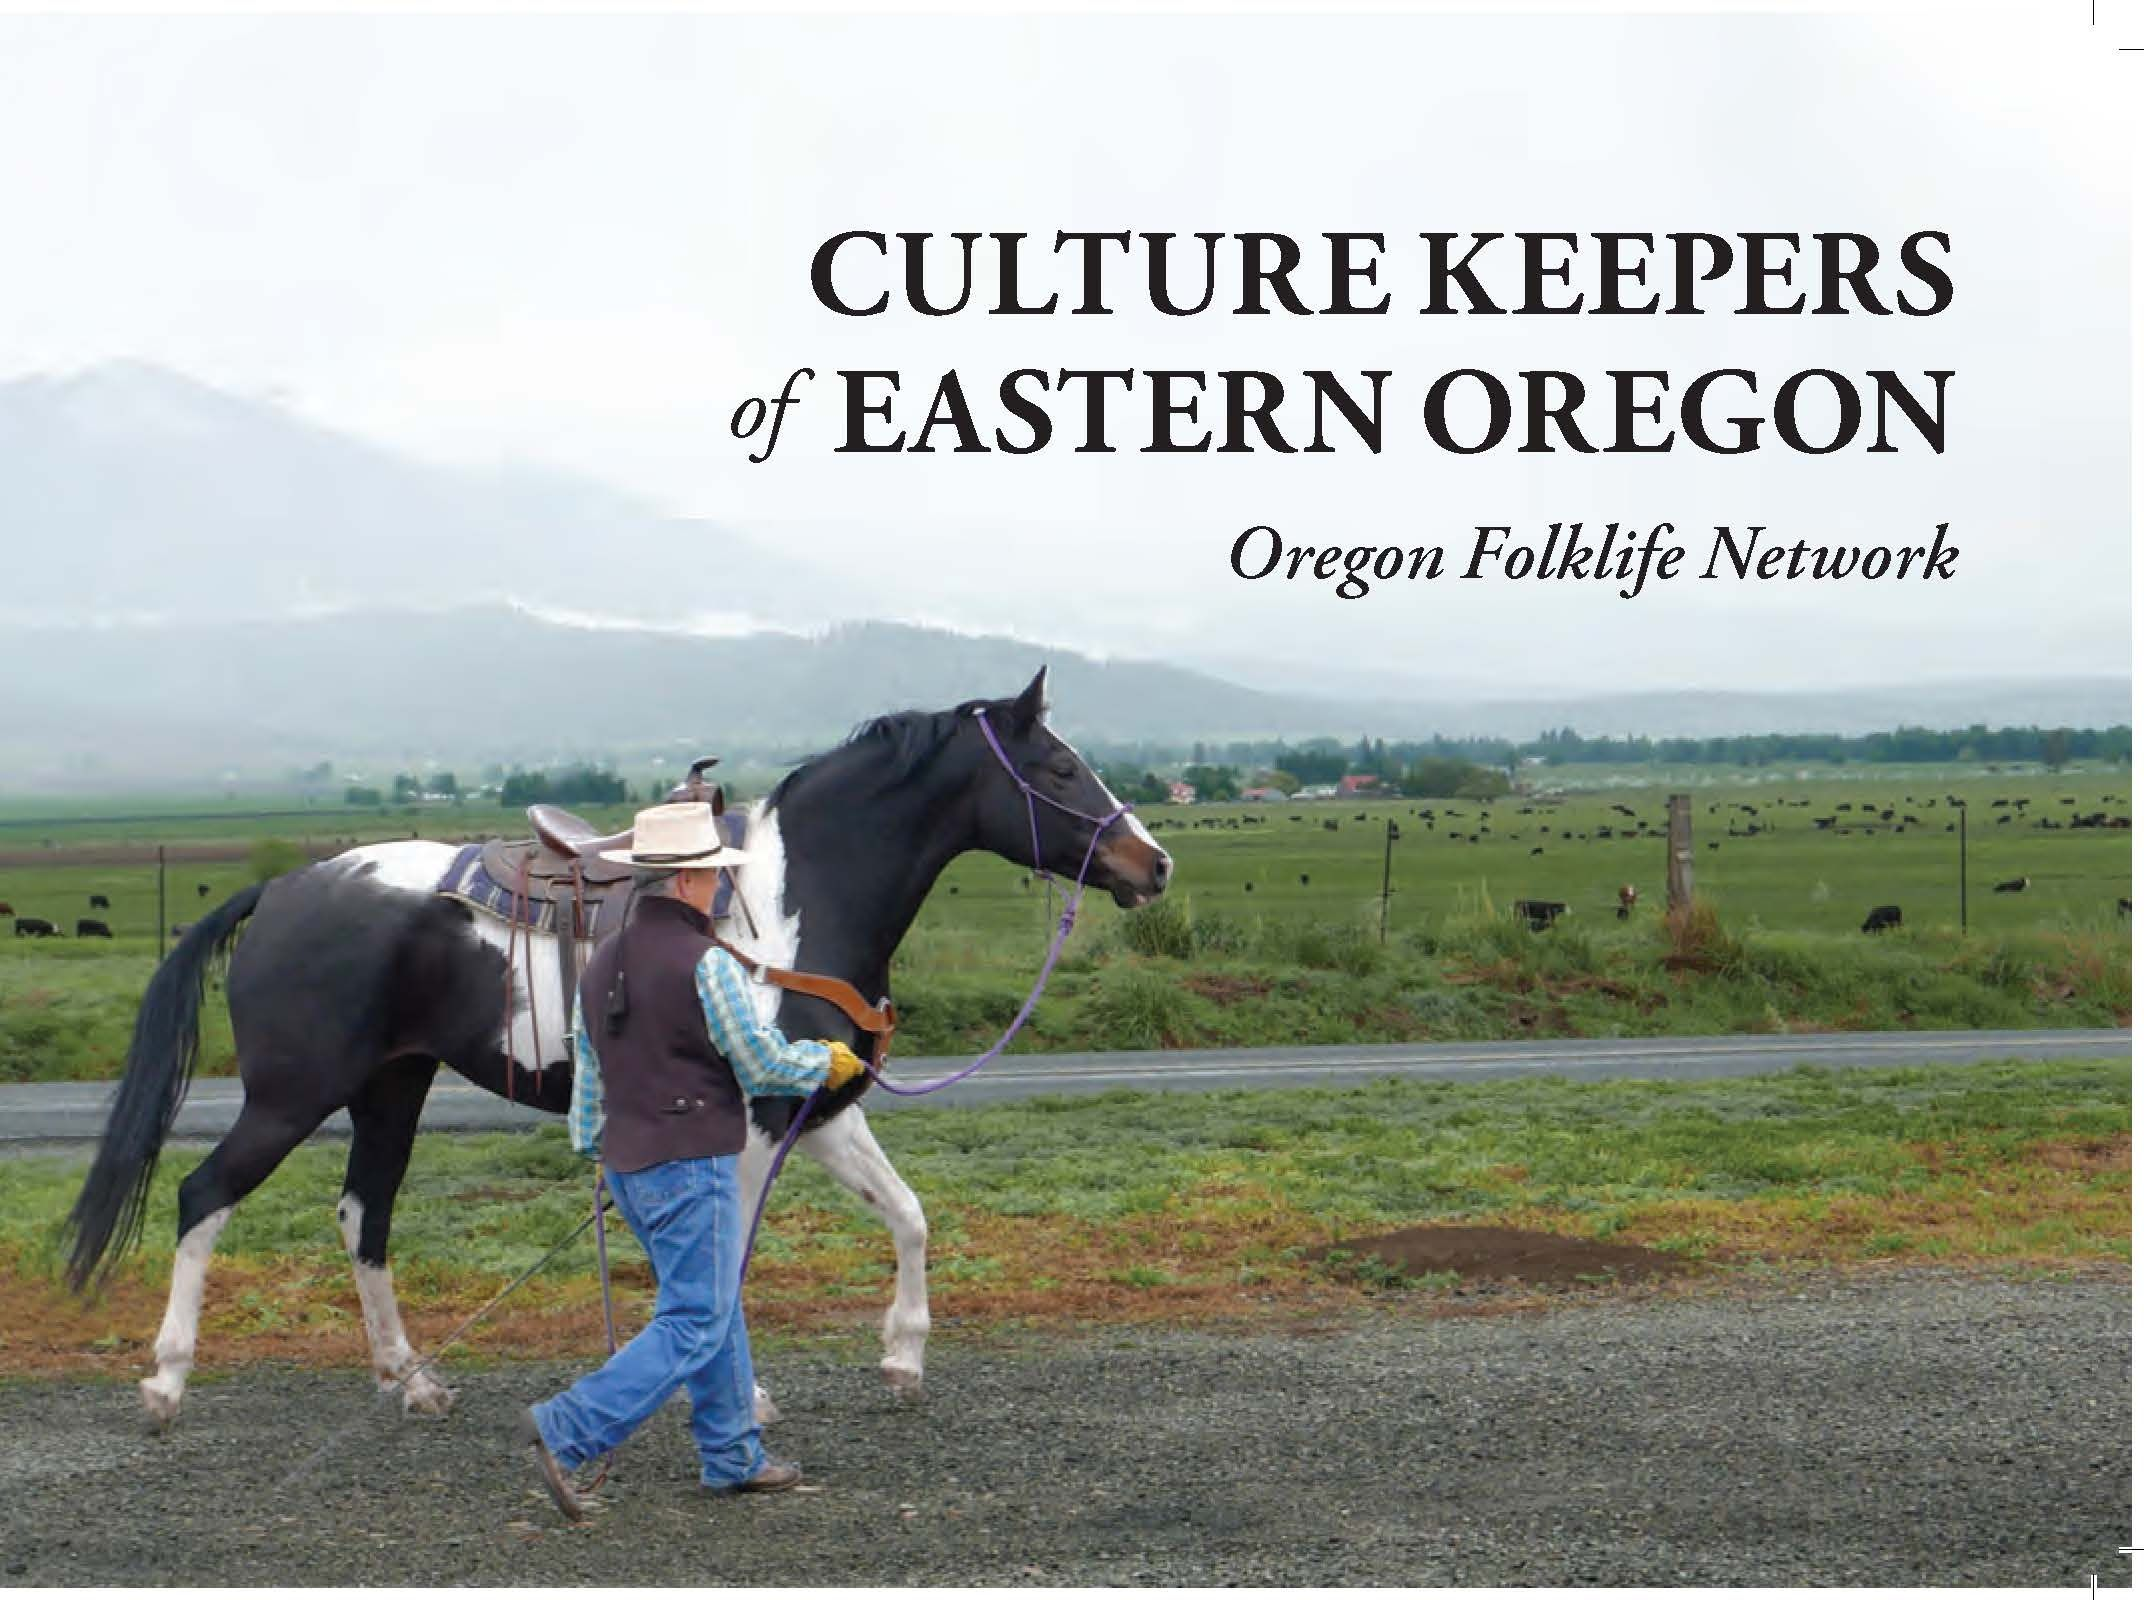 Culture keepers of eastern Oregon by the